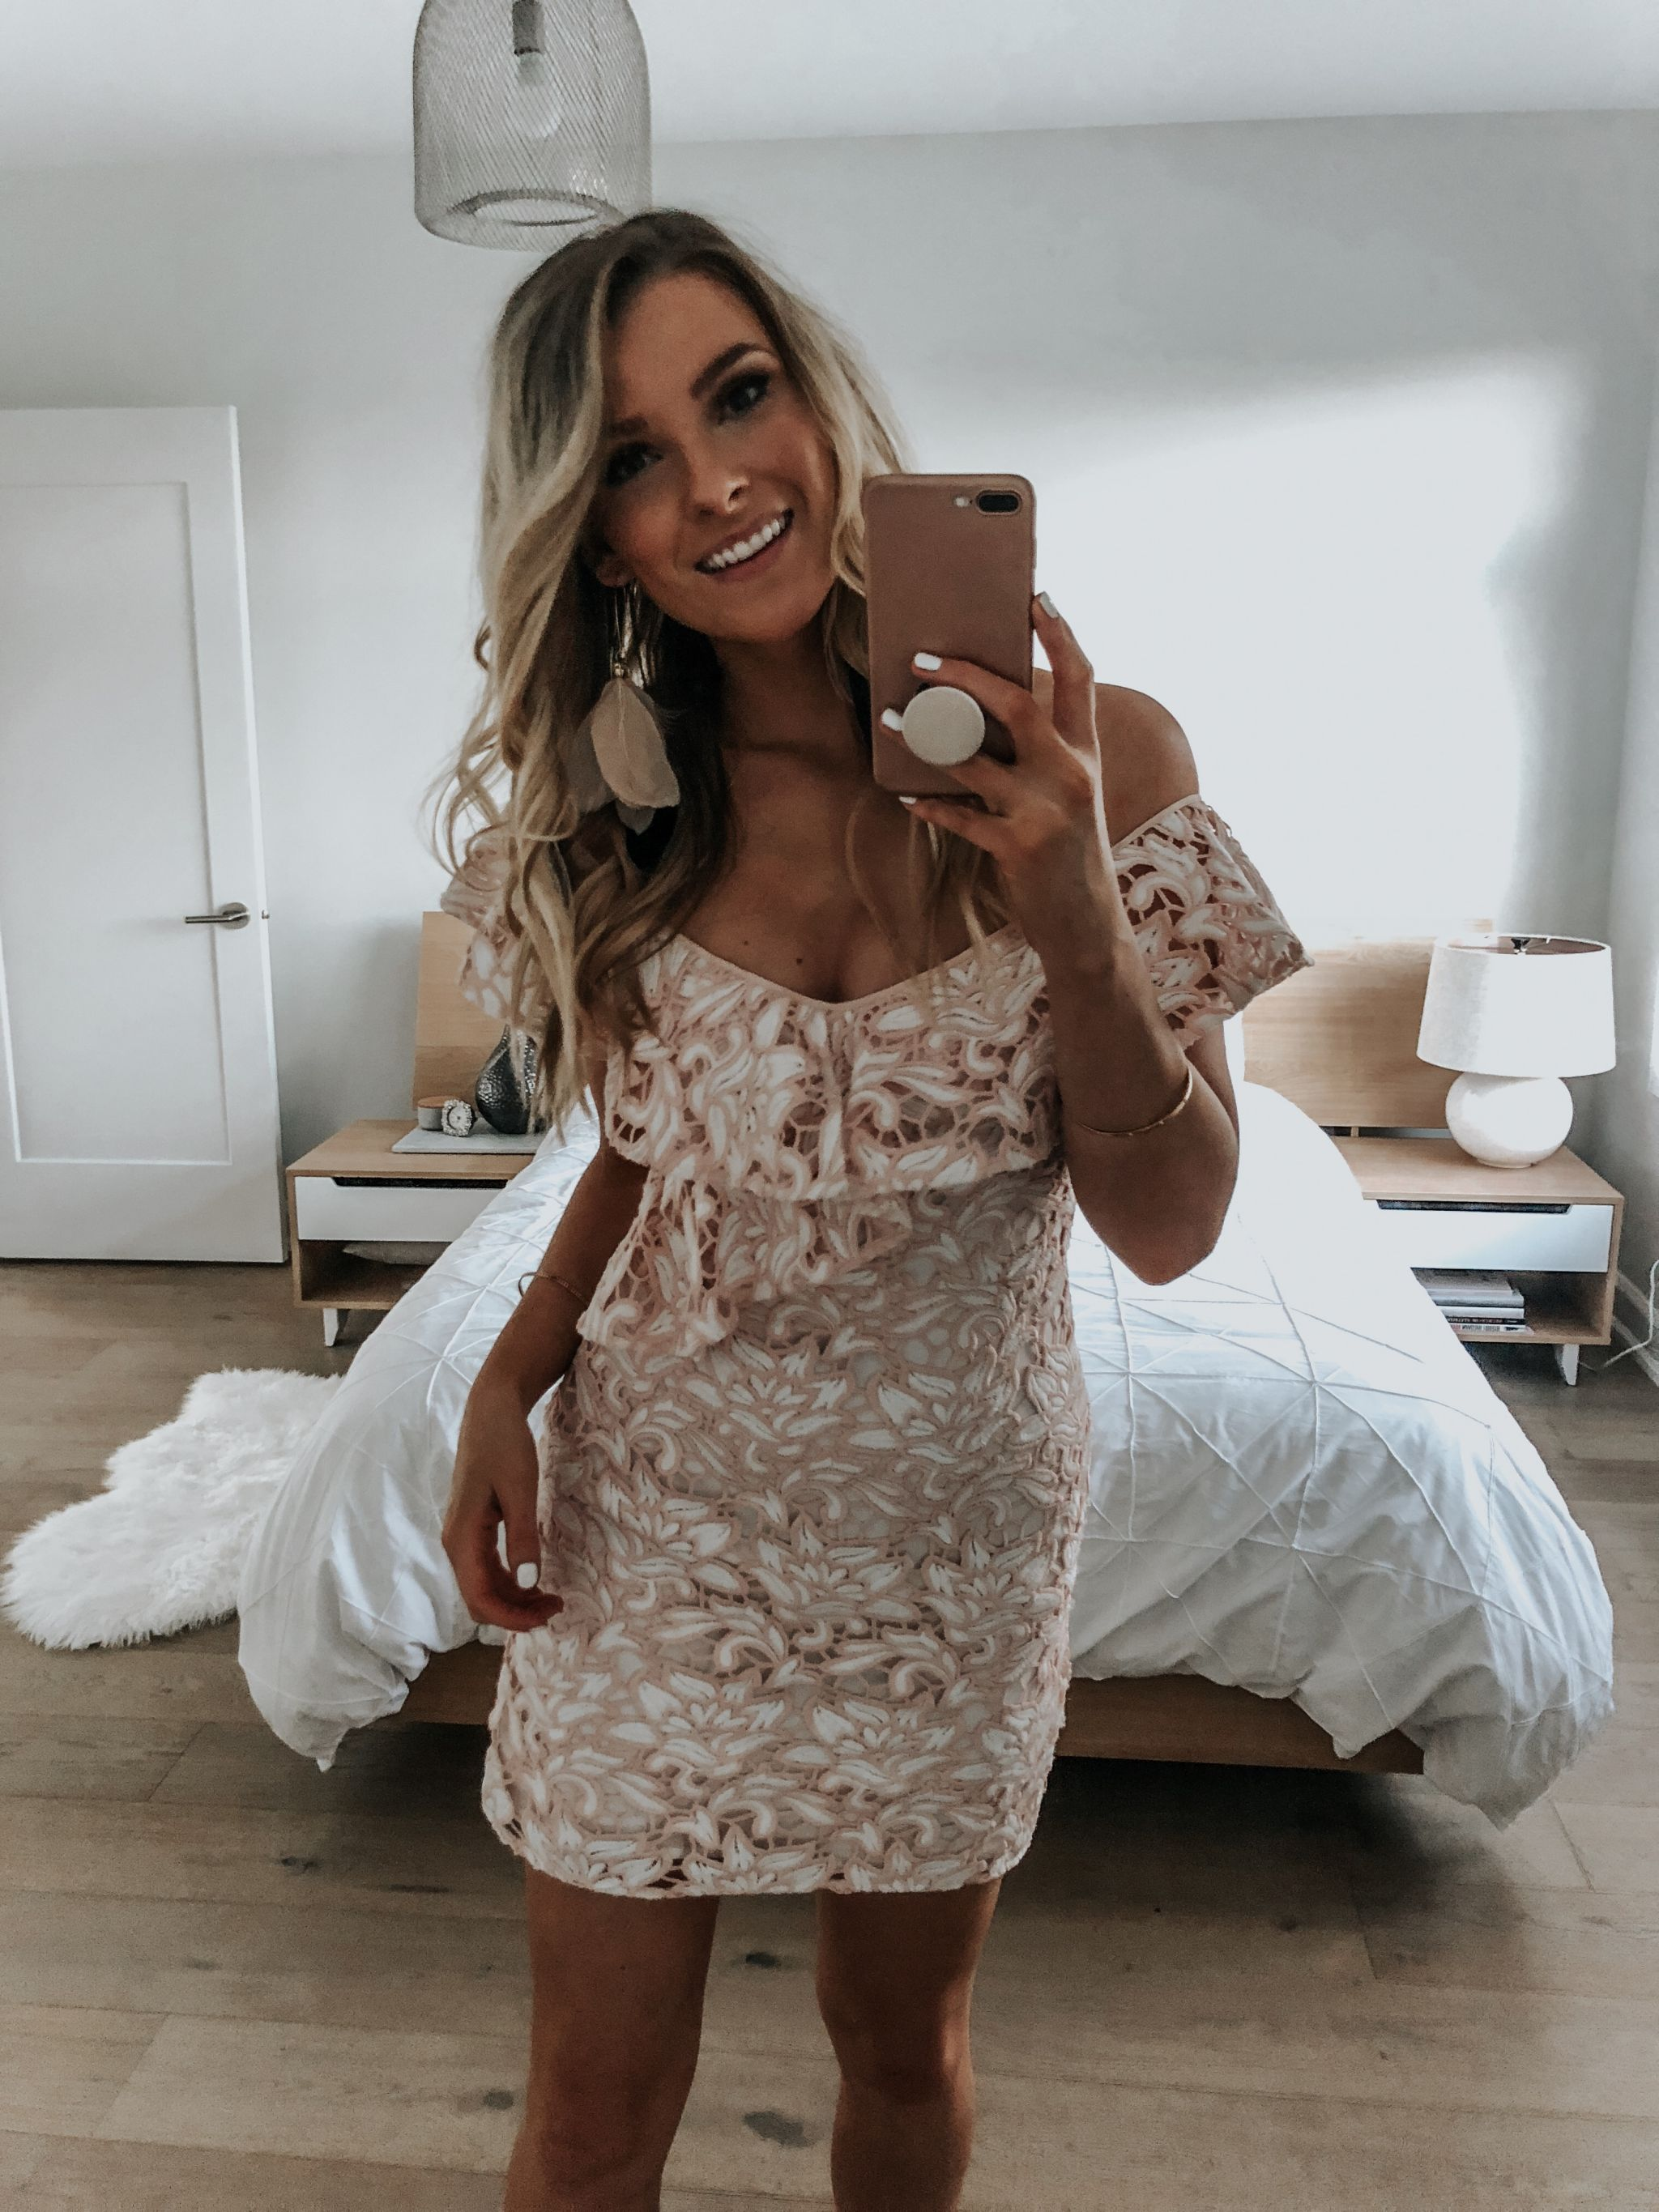 1 person, girl wearing lace dress bachelorette